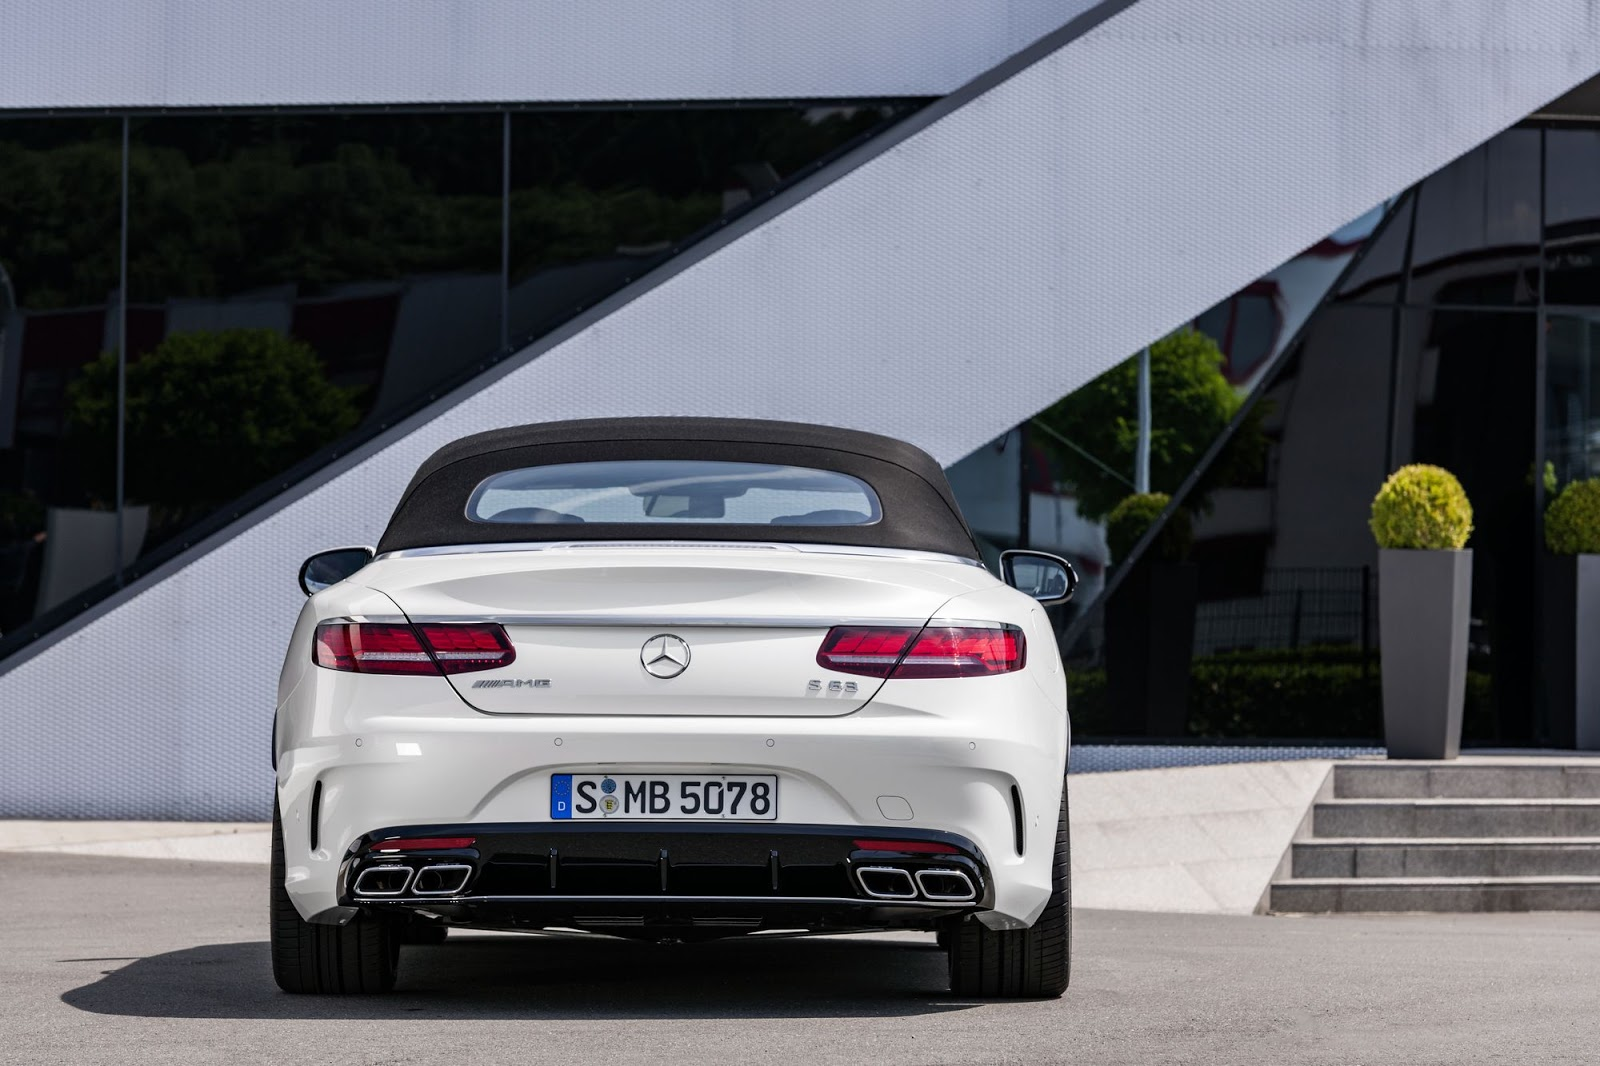 Mercedes-AMG S 63 4MATIC+ Cabriolet, 2017. Exterieur: designo diamantweiß bright;Kraftstoffverbrauch kombiniert: 10,1 l/100 km; CO2-Emissionen kombiniert: 229 g/km*  Mercedes-AMG S 63 4MATIC+ Cabriolet, 2017. Exterior: designo diamond white bright;Fuel consumption combined: 10.1 l/100 km; CO2 emissions combined: 229 g/km*